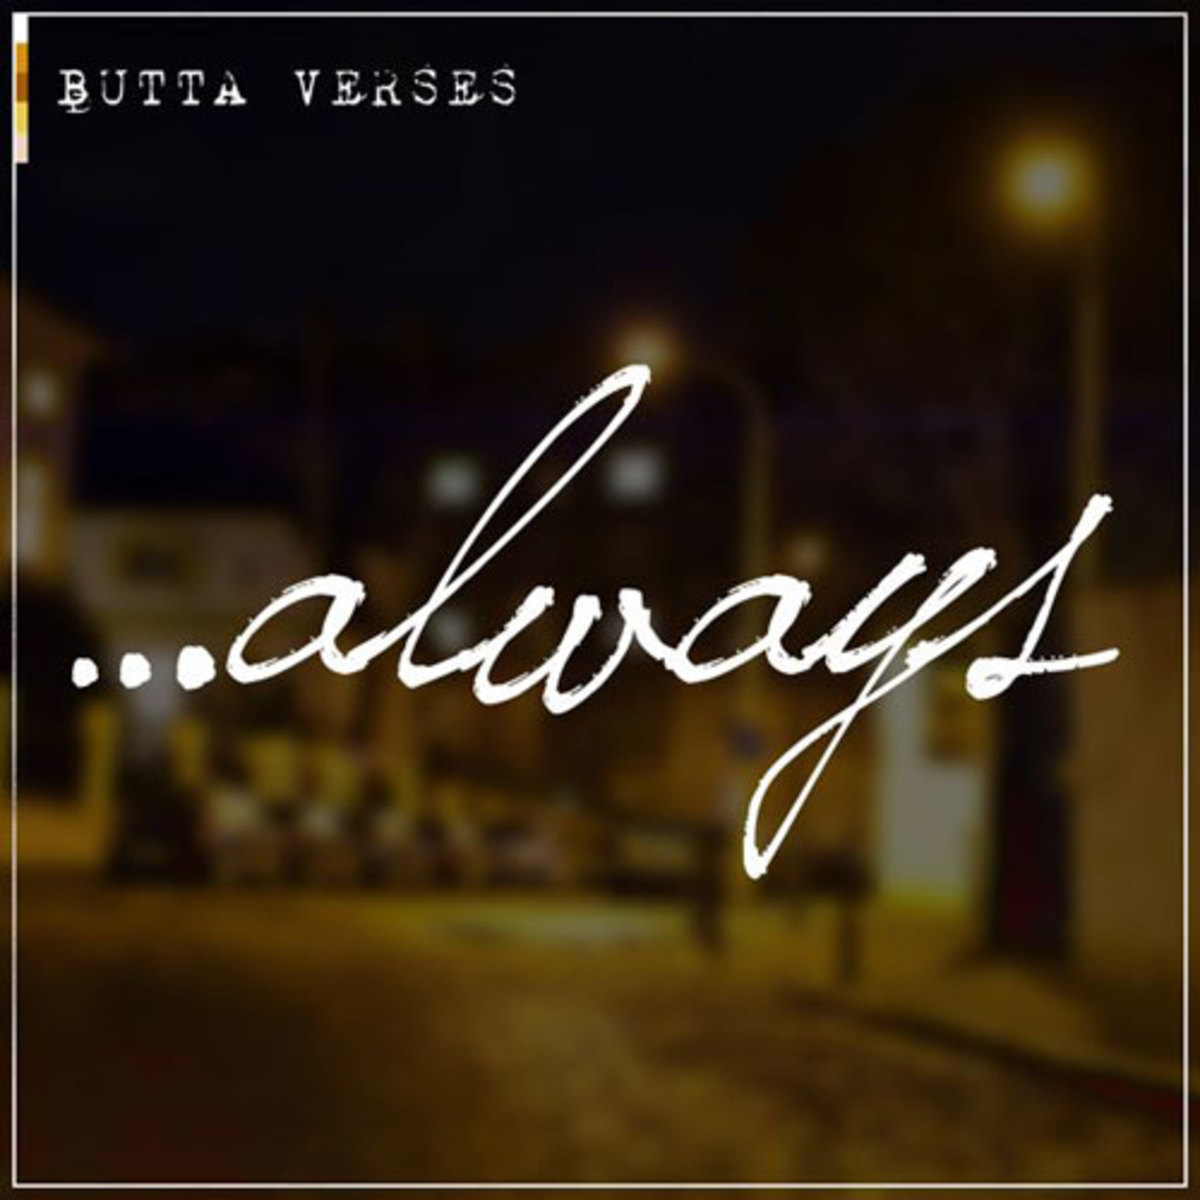 buttaverses-always.jpg